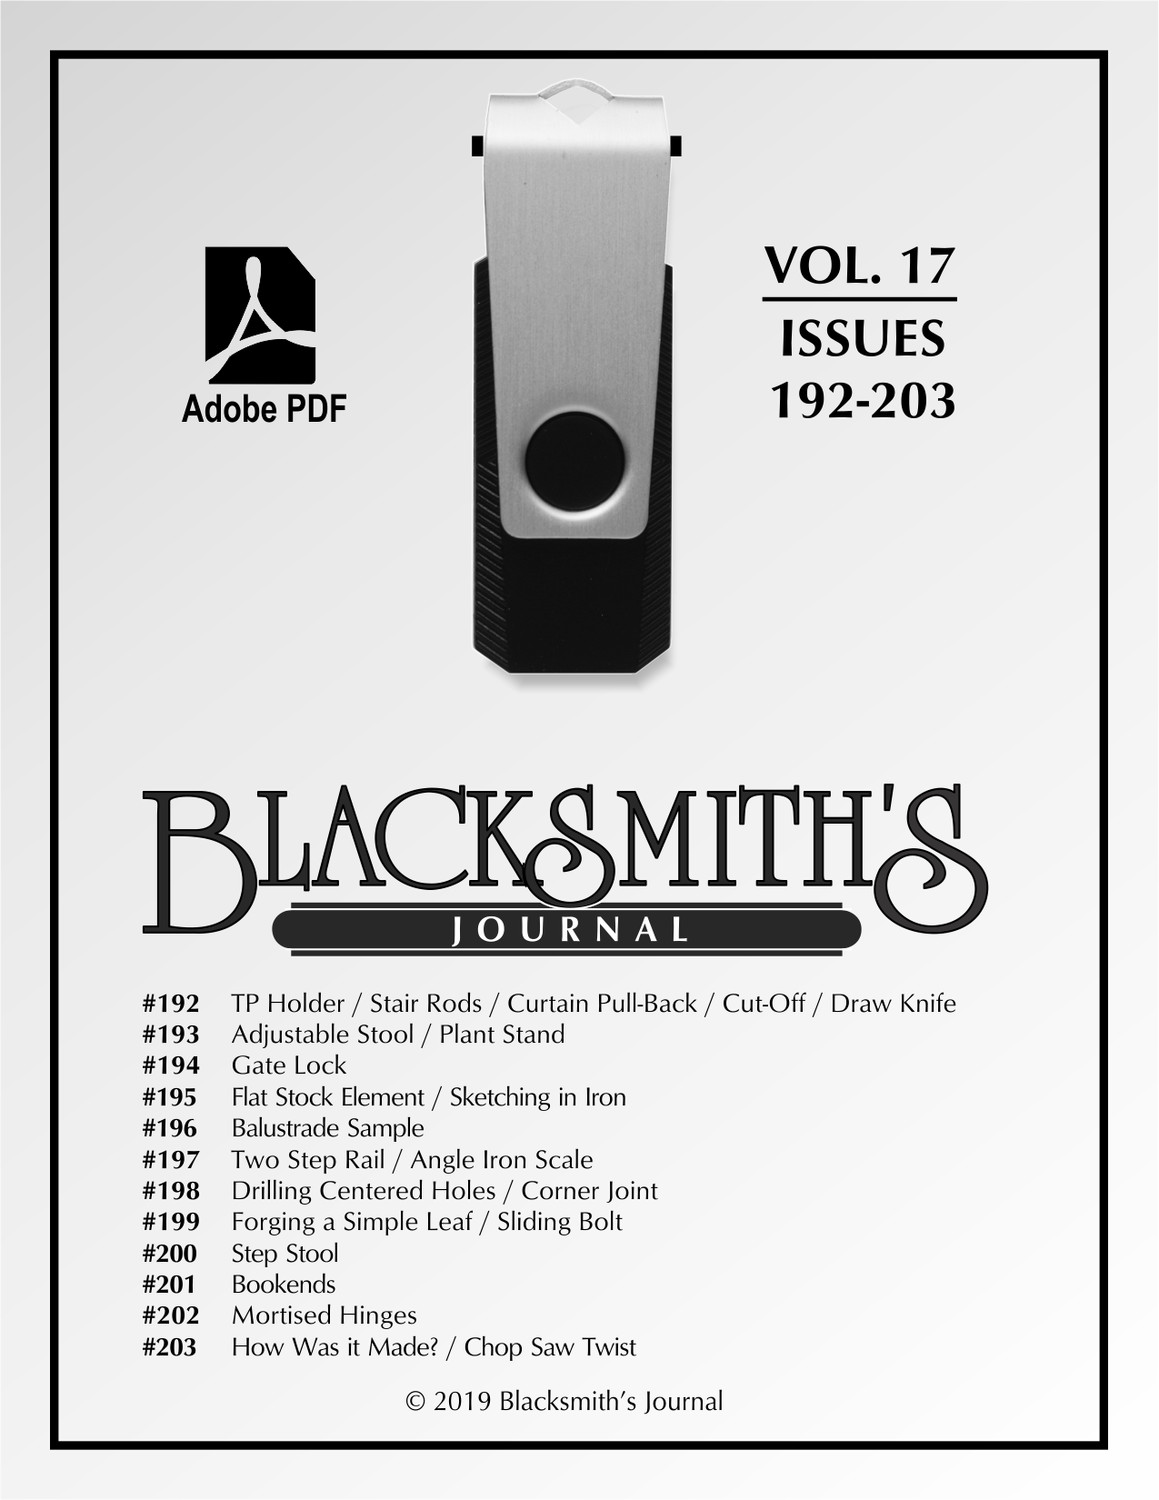 USB Flash Drive - Blacksmith's Journal Vol. 17